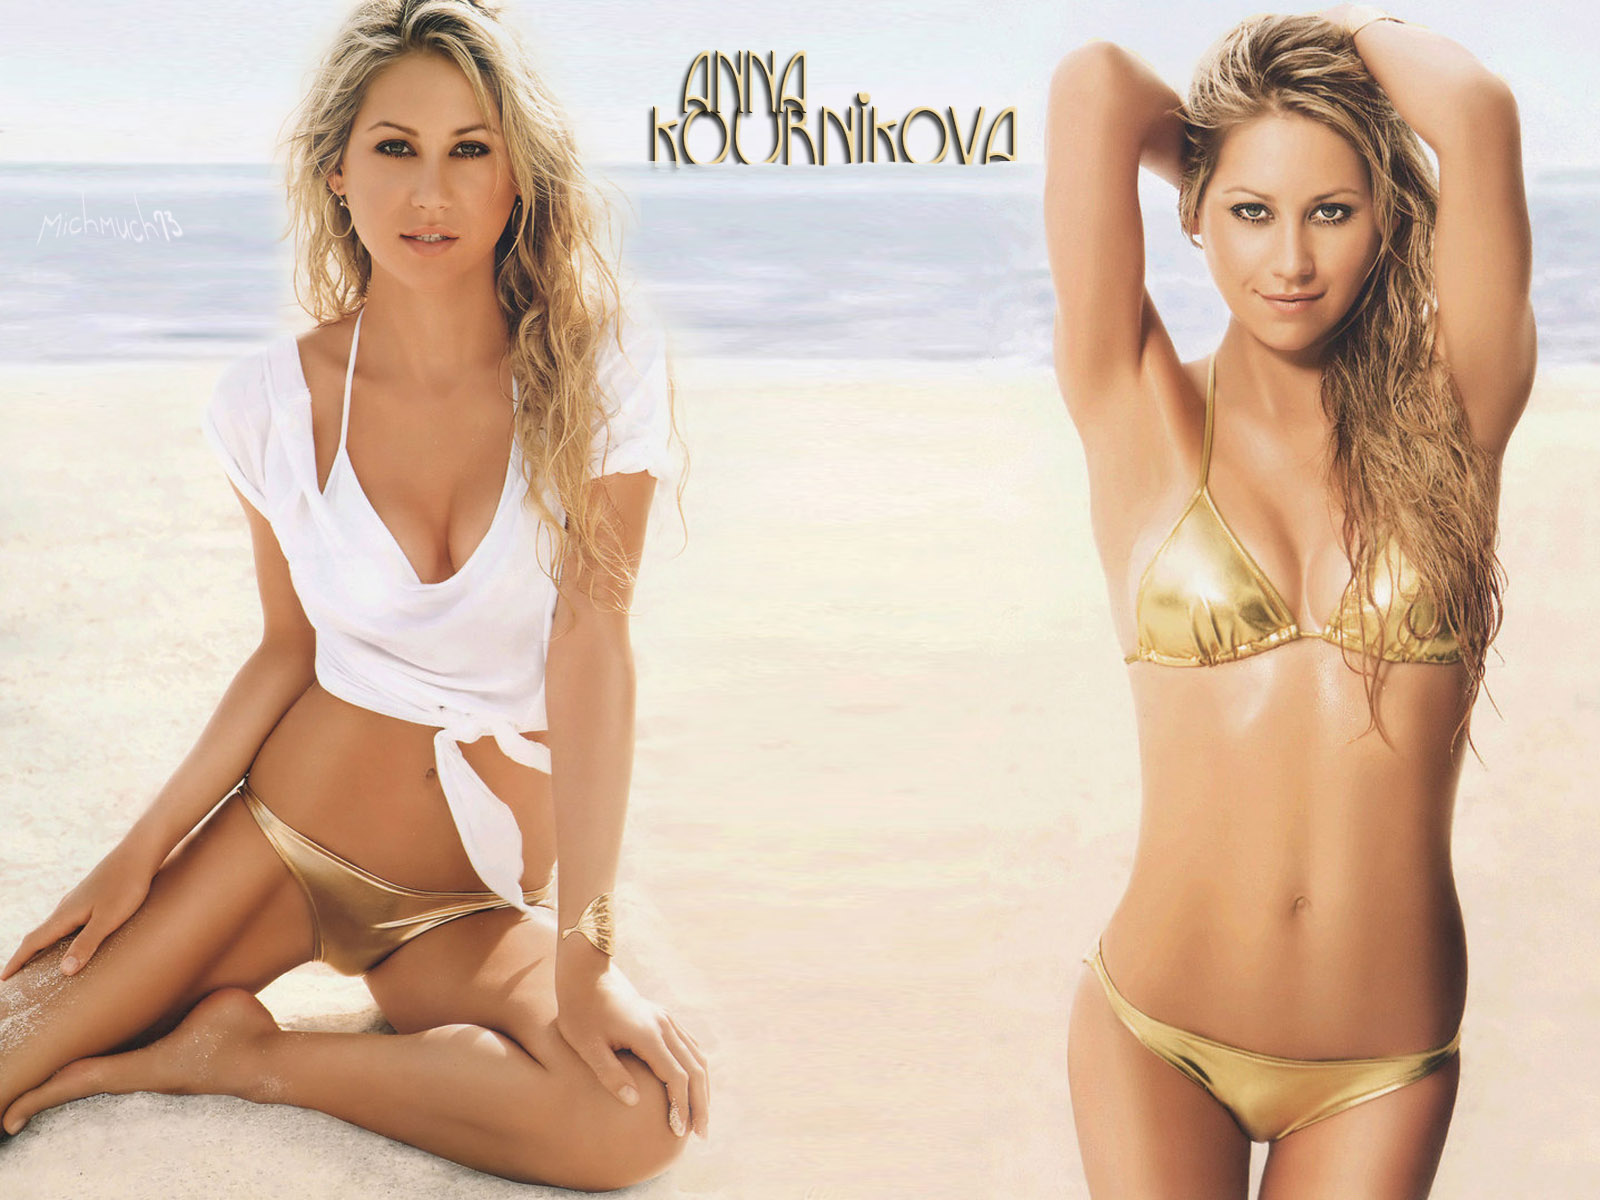 Sexy Hot Russian Women - Anna Kournikova